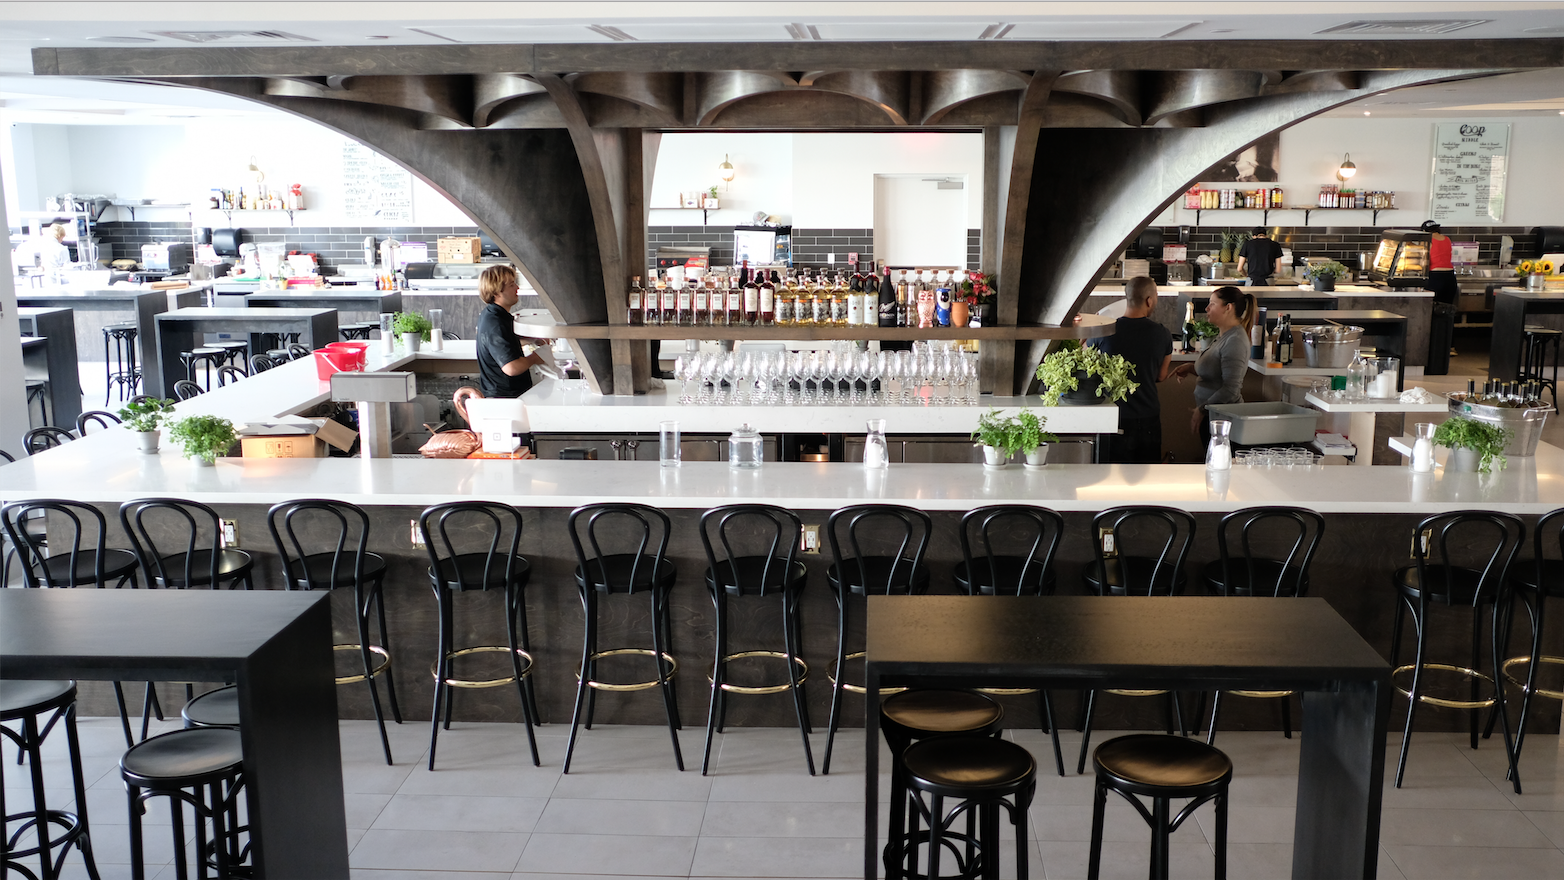 Where to Eat Lunch St. Roch Market Not your average food hall, St. Roch Market offers diverse options from 12 different 'chef concepts' that range from vegan butternut nachos to Peruvian-style ceviches.